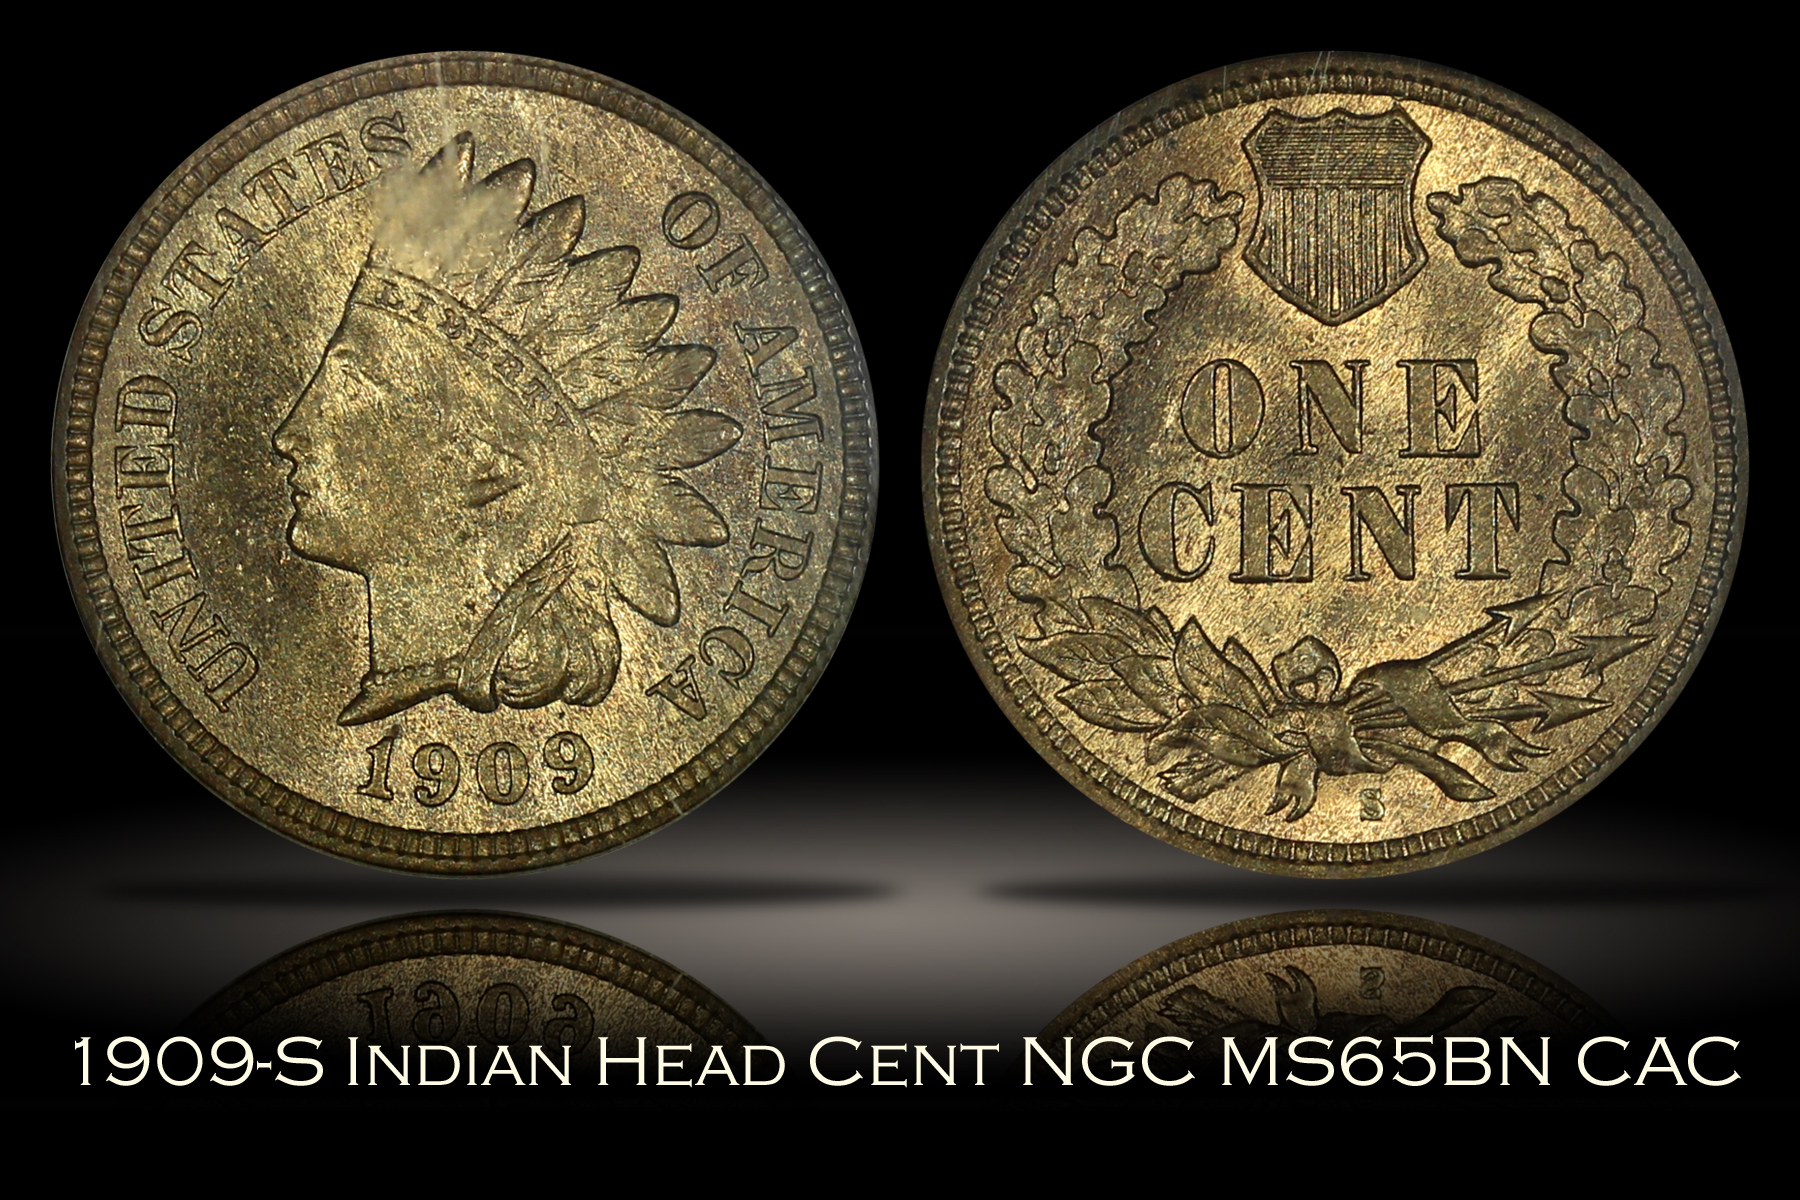 1909-S Indian Head Cent NGC MS65BN CAC